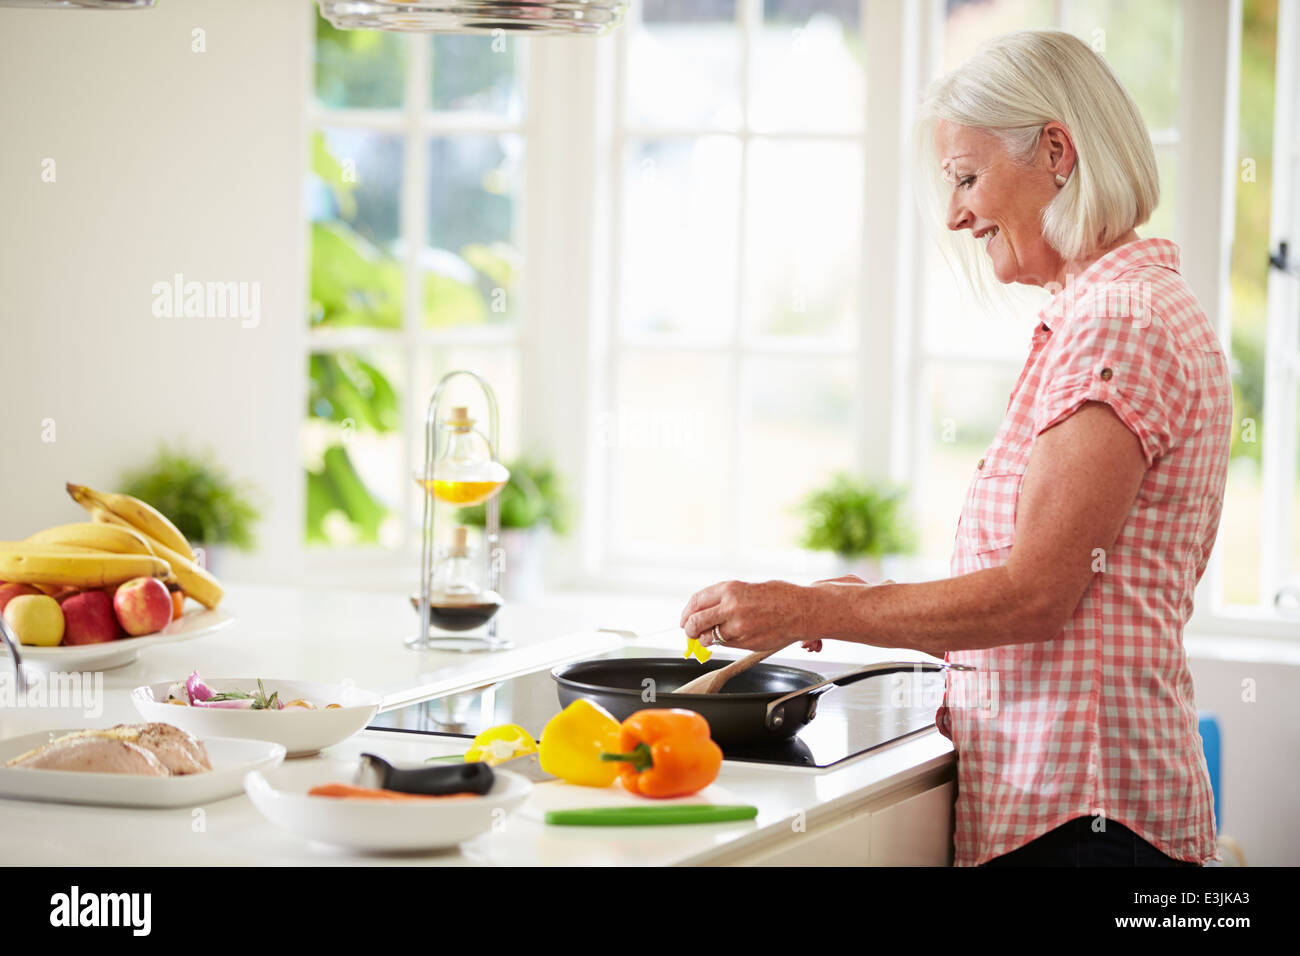 Middle Aged Woman Cooking Meal In Kitchen Stock Photo: 71095755 - Alamy